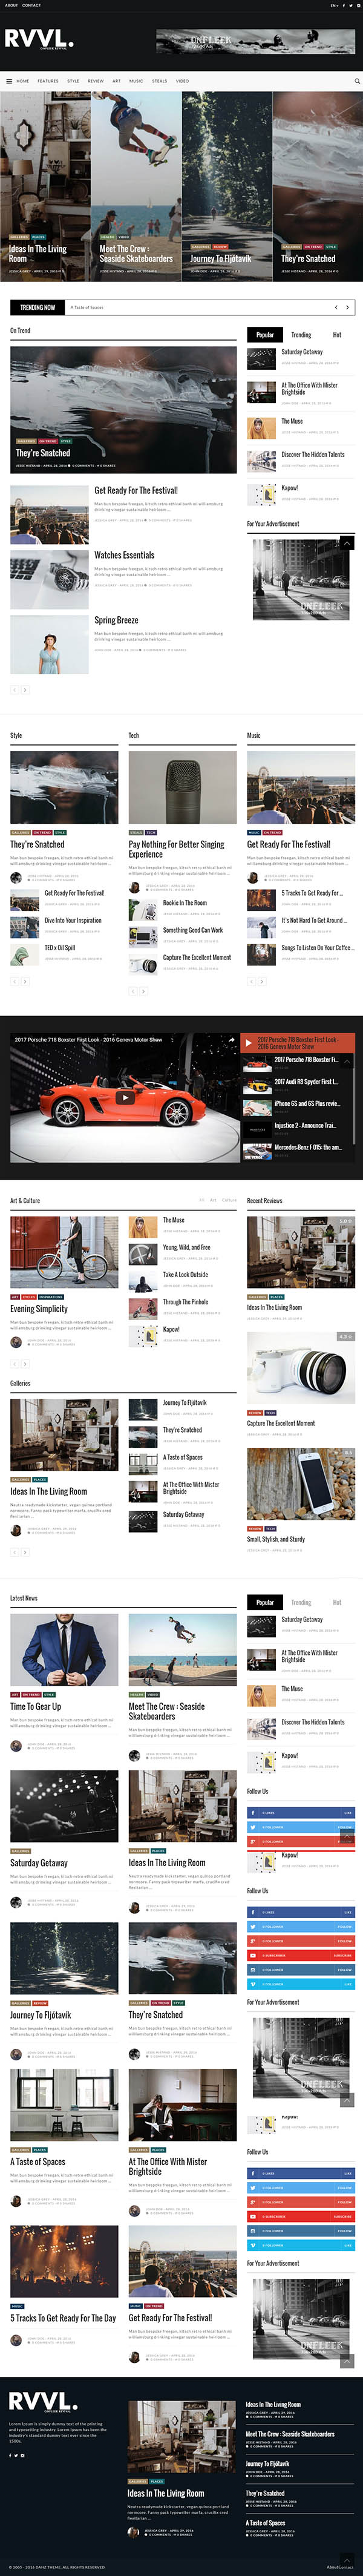 Onfleek - AMP Ready & Responsive Magazine Theme